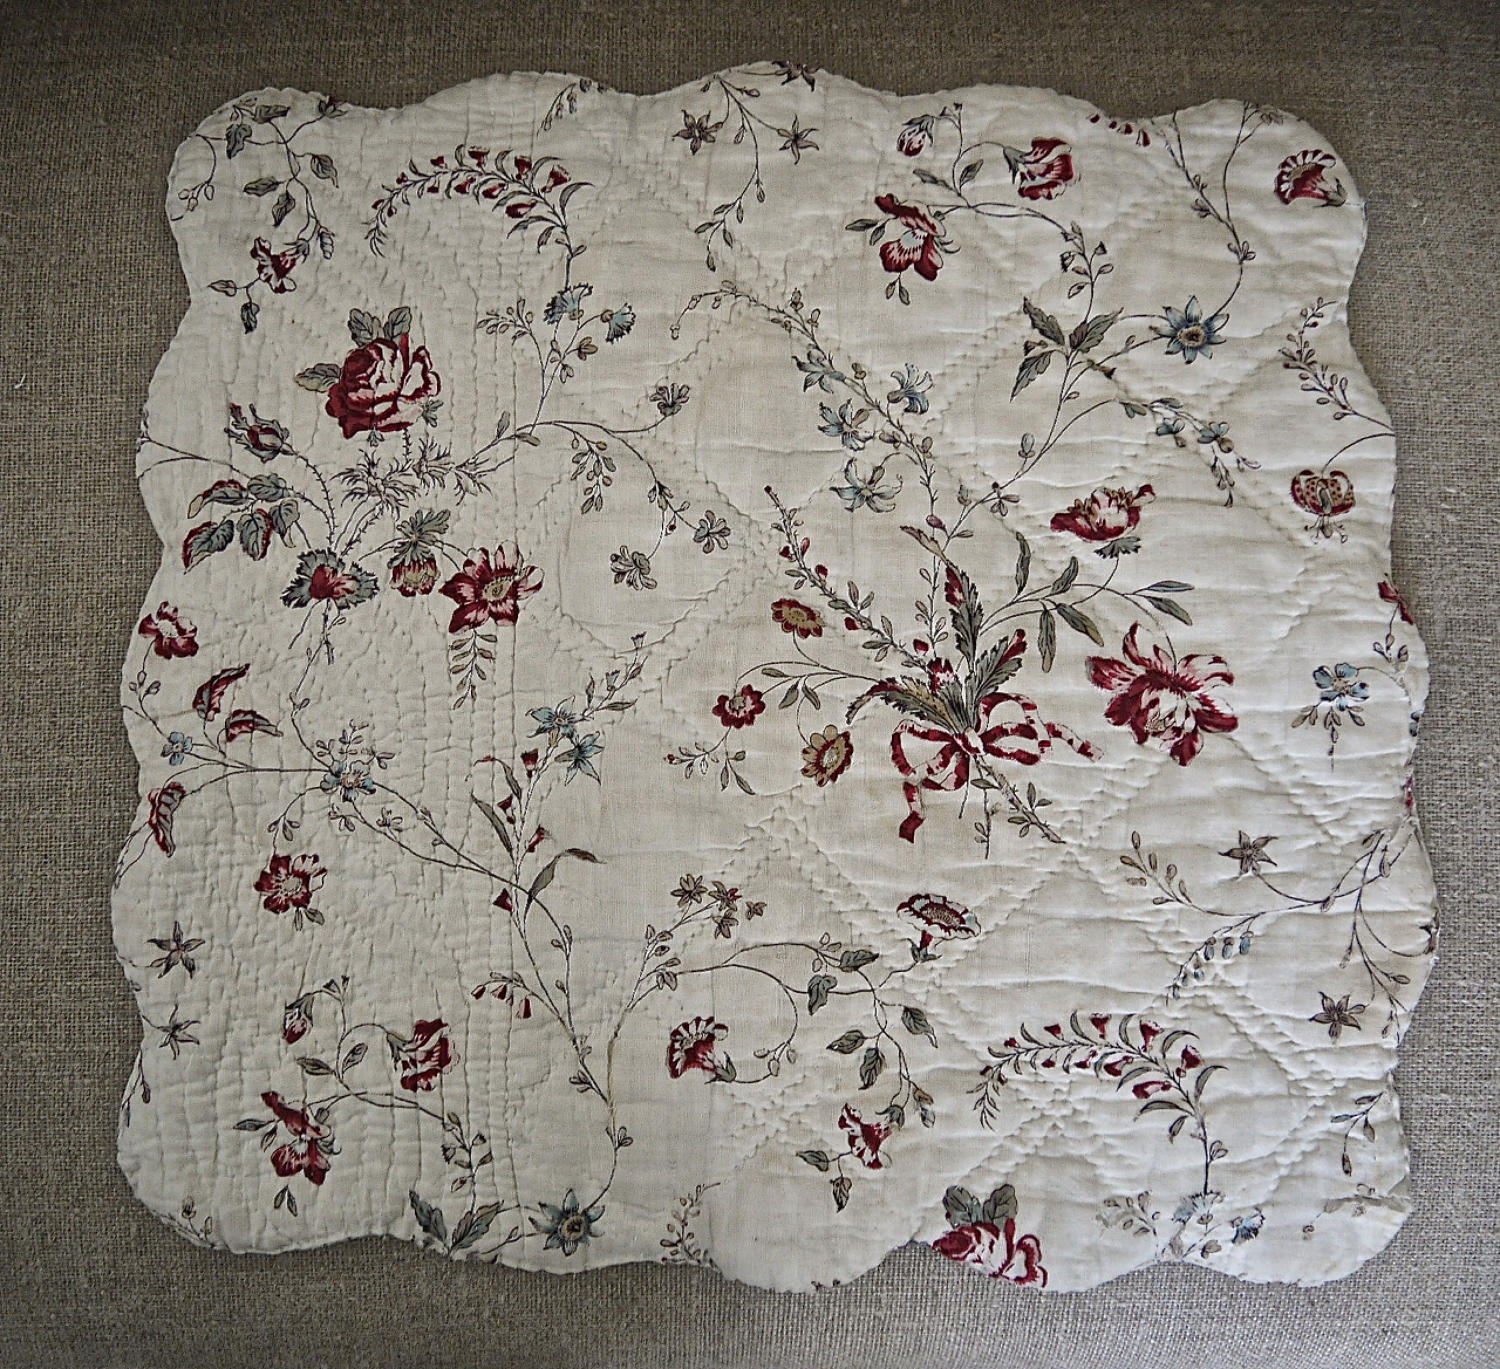 Jouy Floral Cotton Square French 18th centry